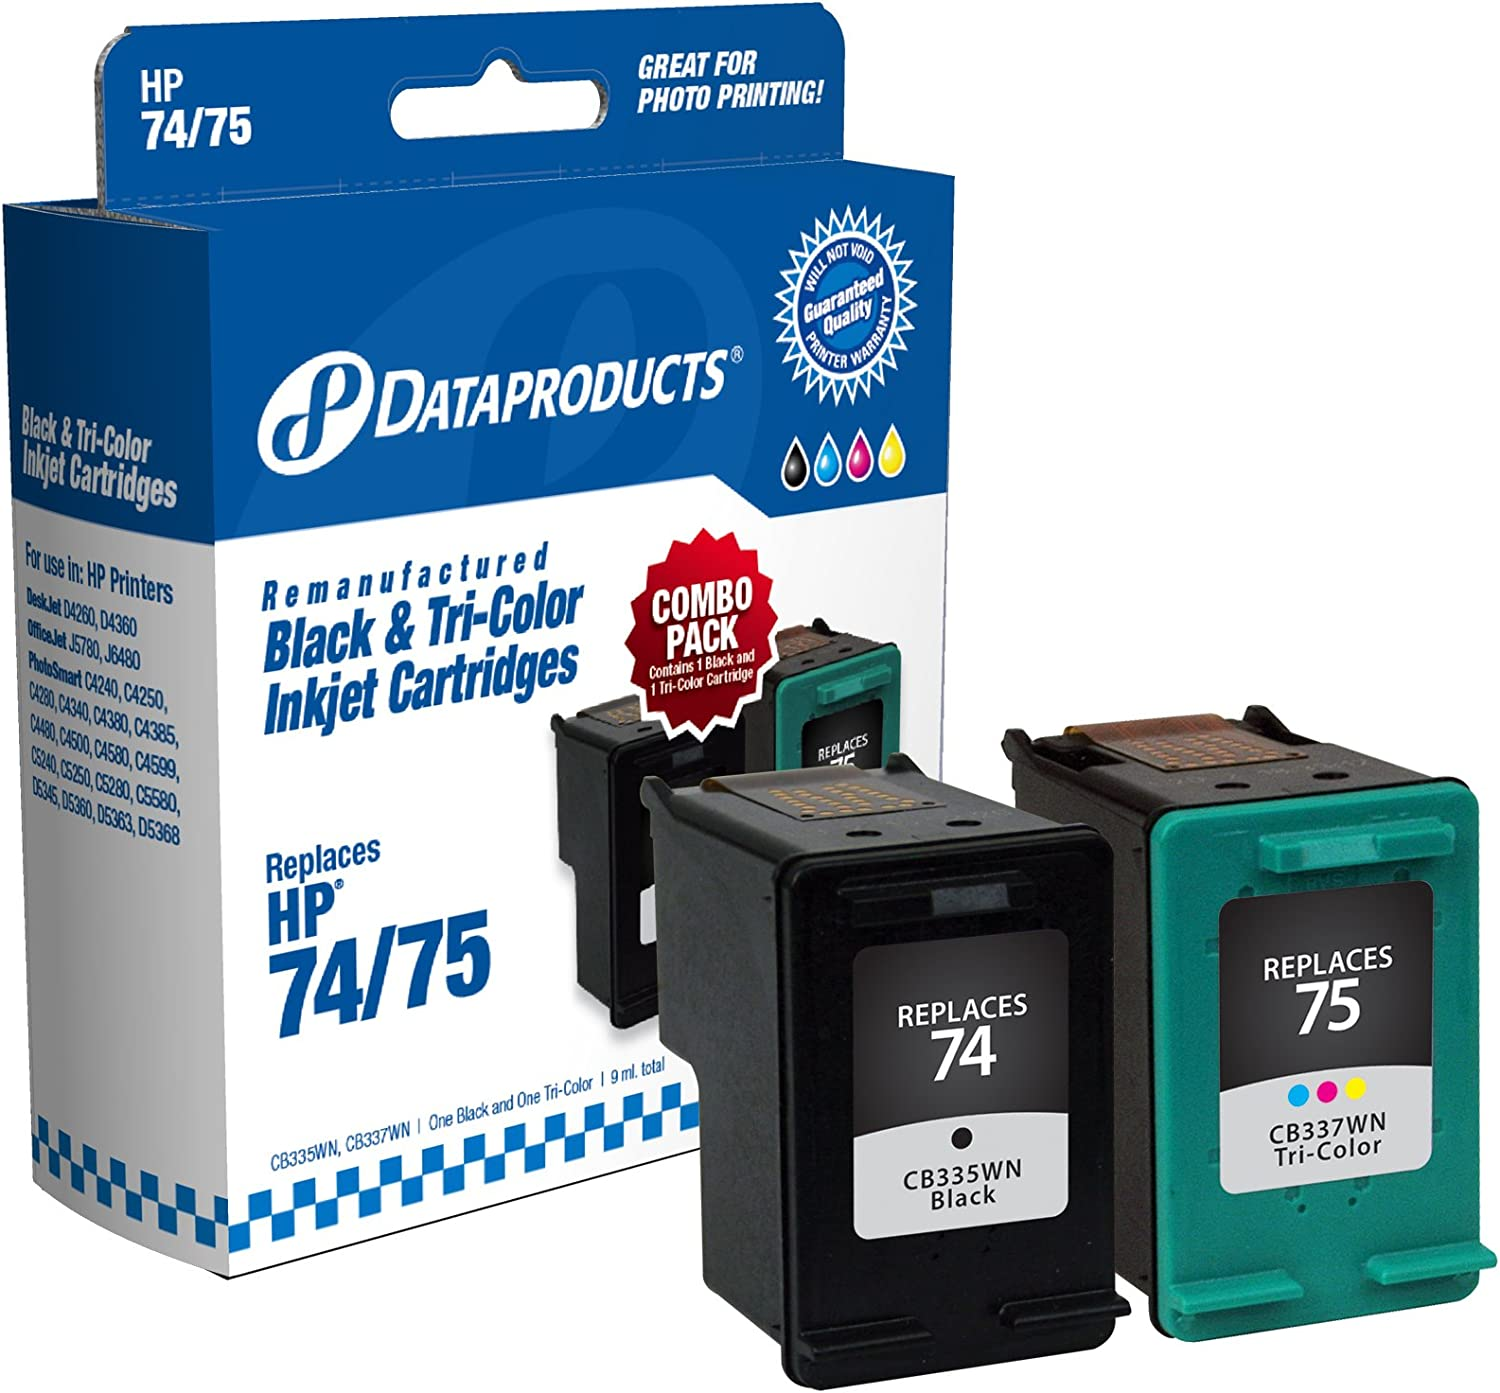 Dataproducts DPC7475 Remanufactured Ink Cartridge Replacement for HP #74/75 (Combo Pack - Black & Tri-Color)